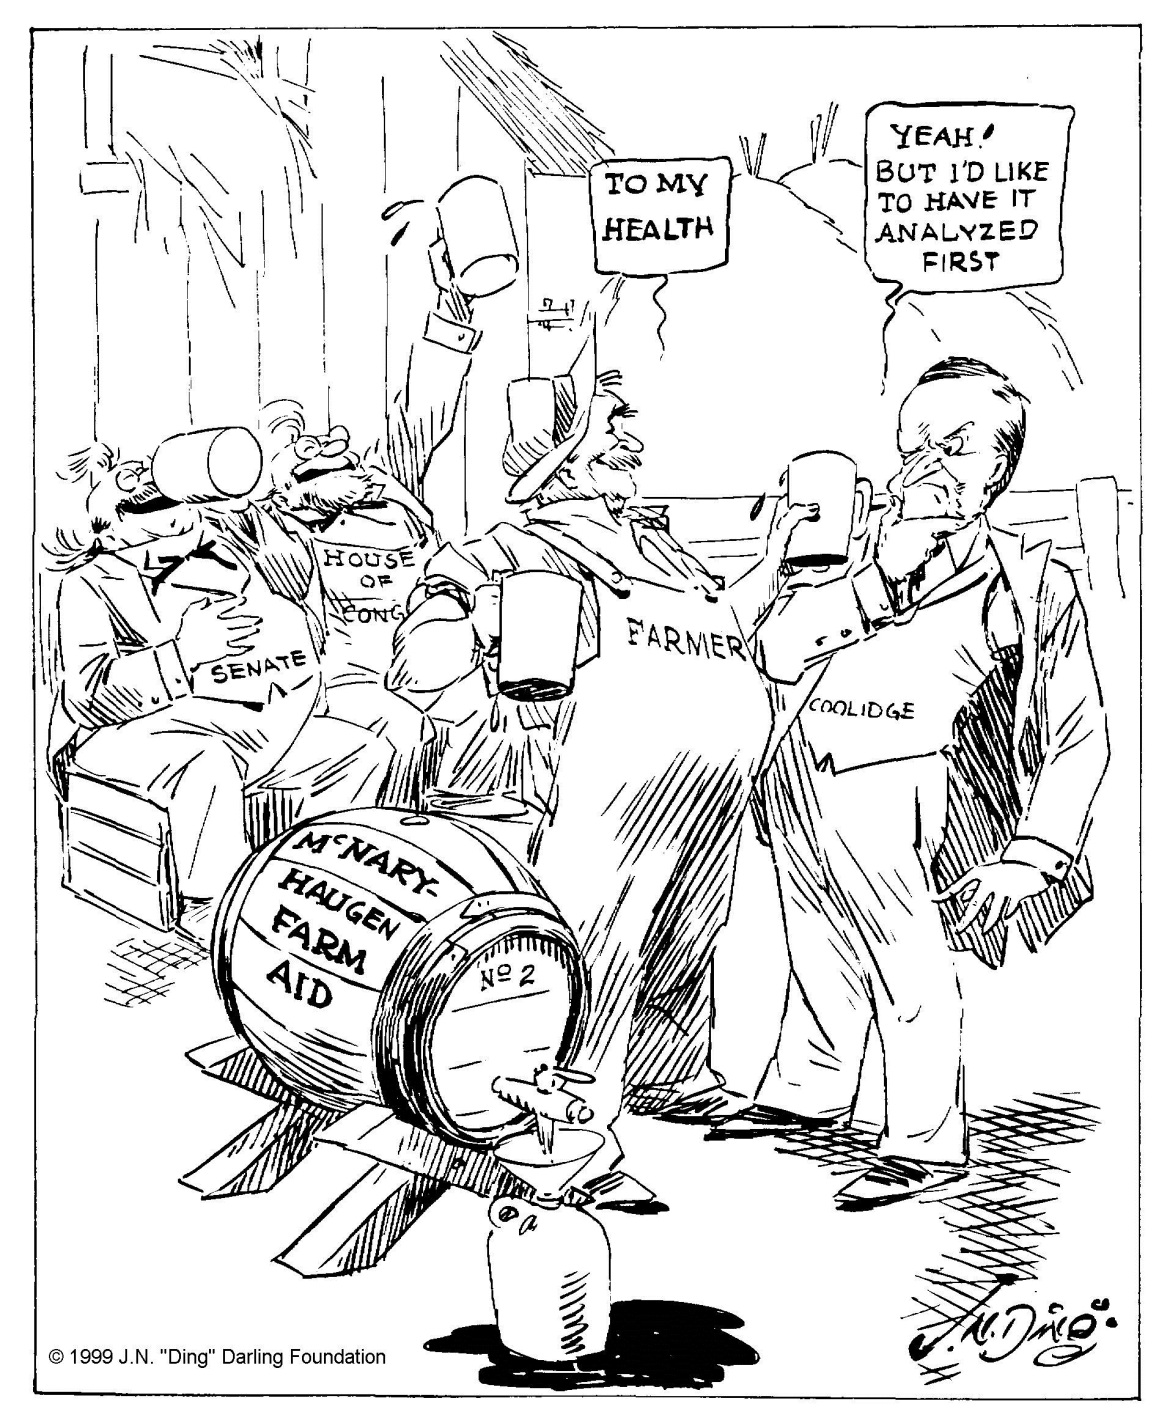 """Safety first,"" by ""Ding"" Darling, The Des Moines Register, April 10, 1928. Courtesy of the Ding Darling Foundation."